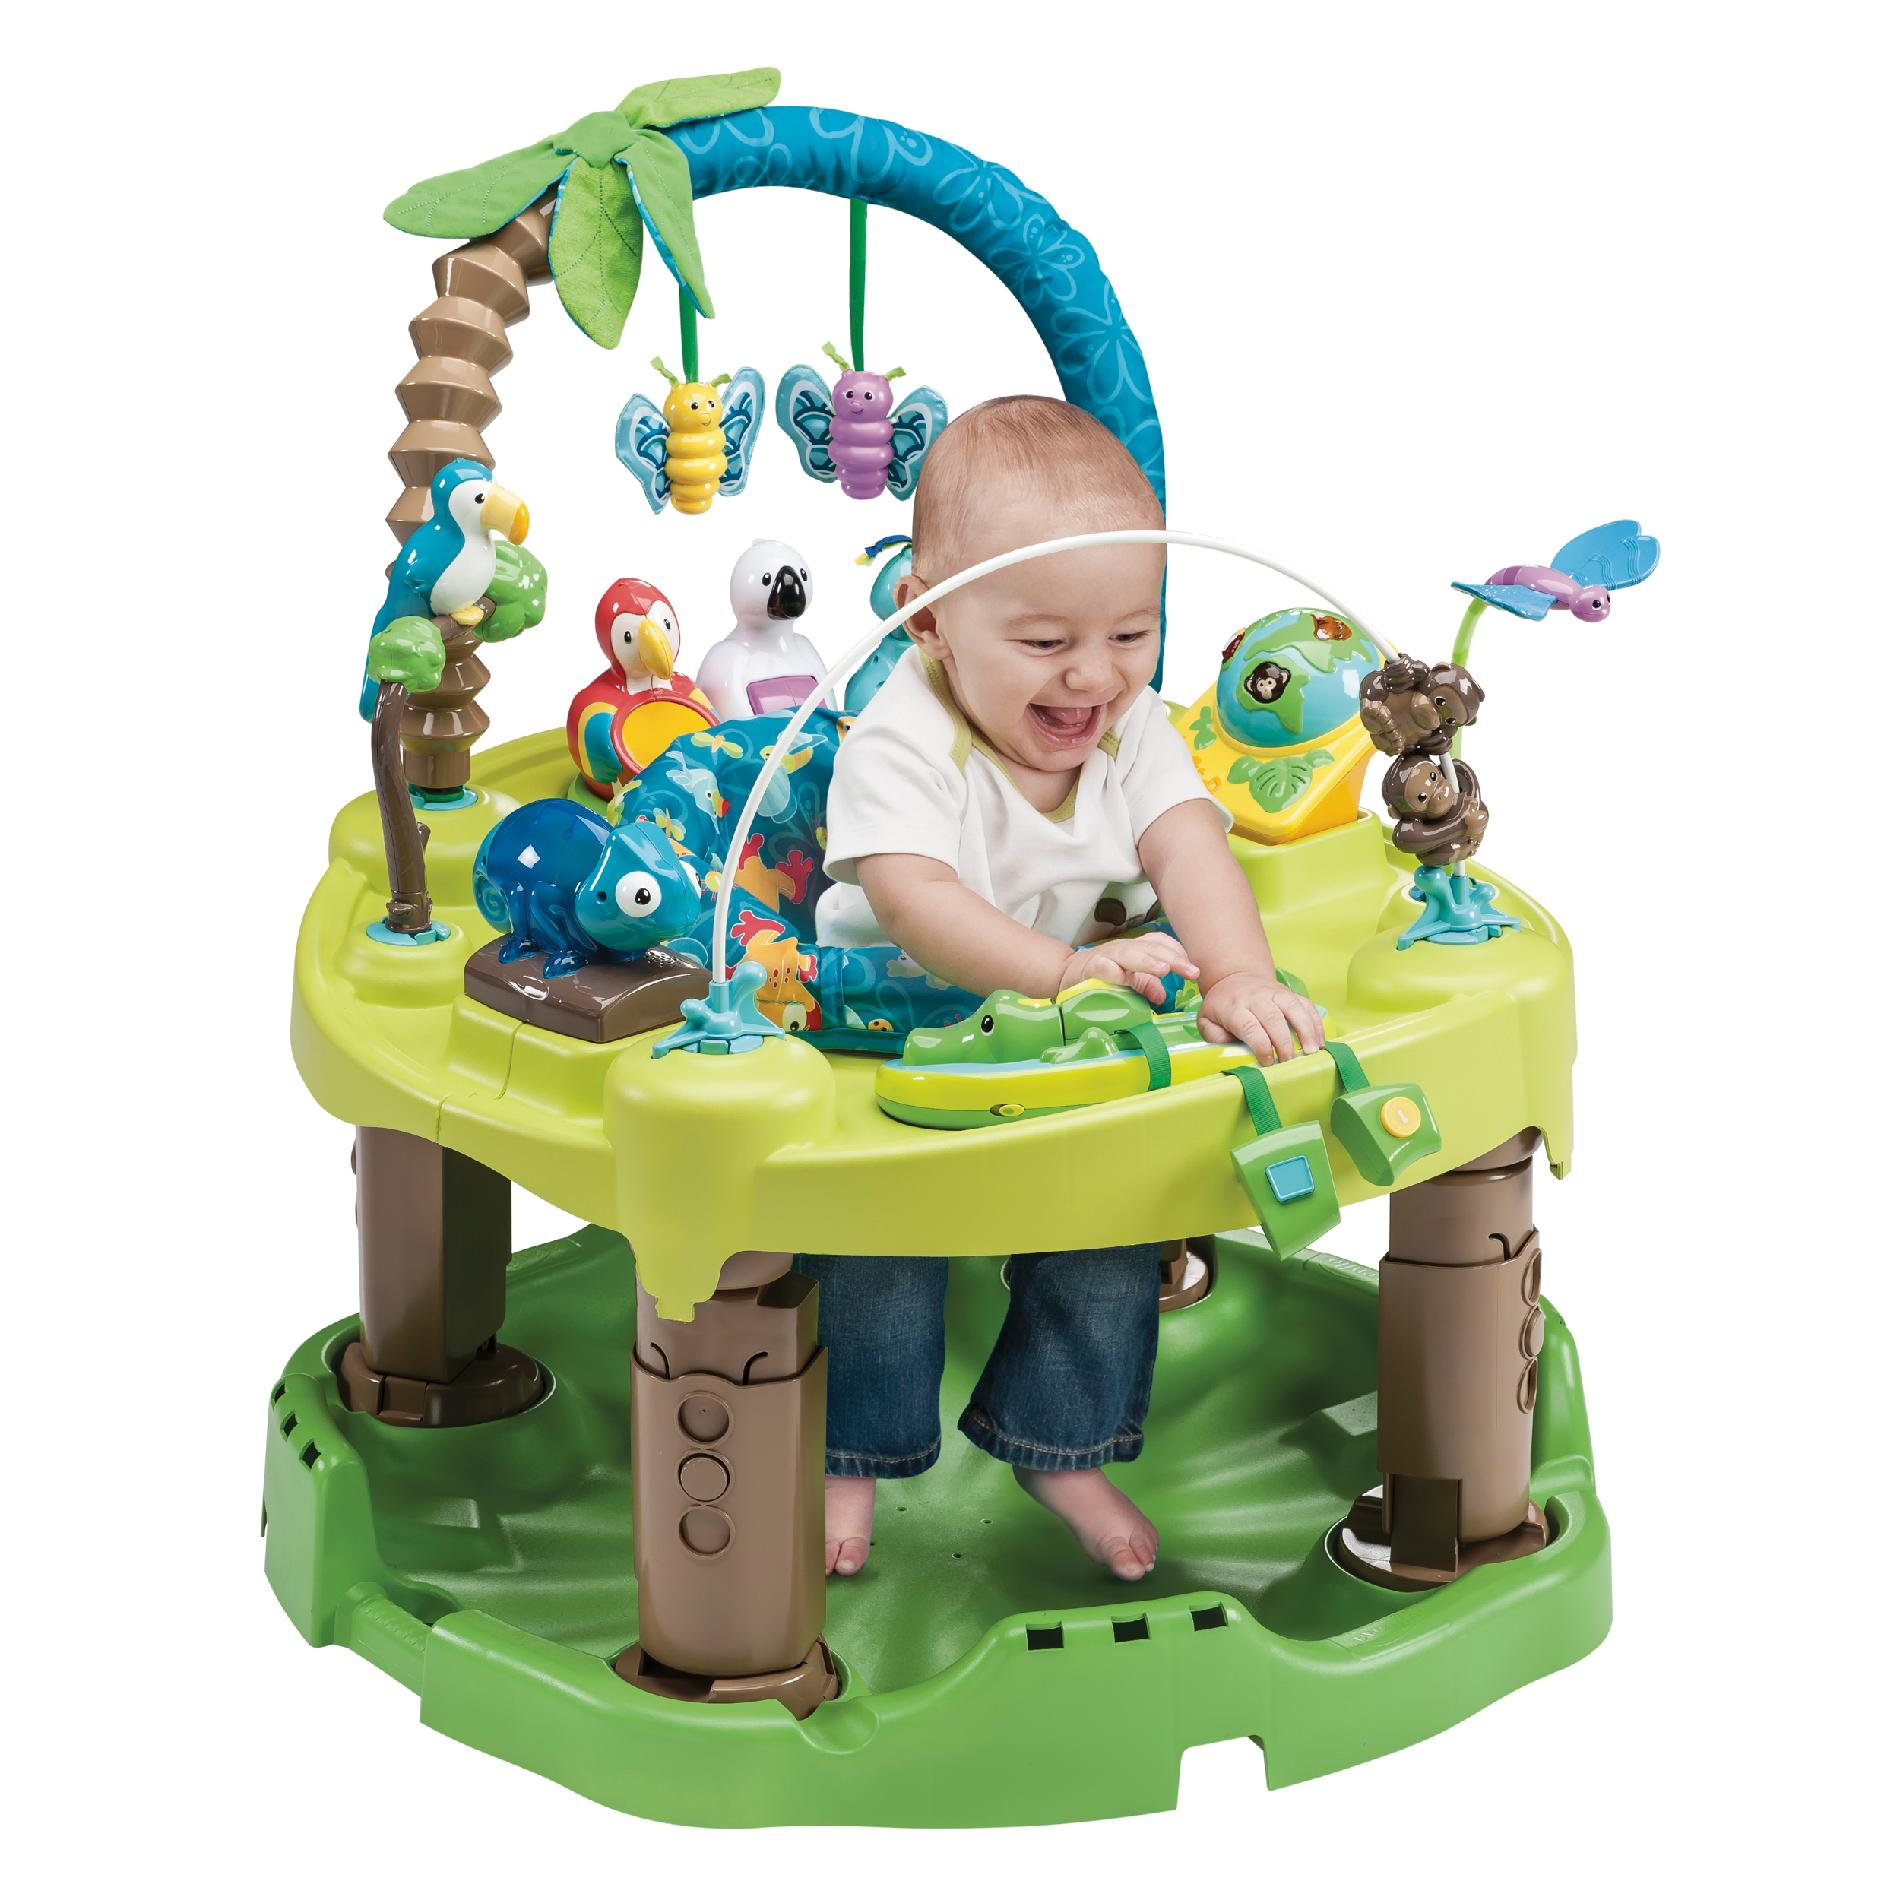 ExerSaucer,Evenflo Evenflo ExerSaucer Triple Fun Activity Center - Life in the Amazon PartNumber: 04924394000P